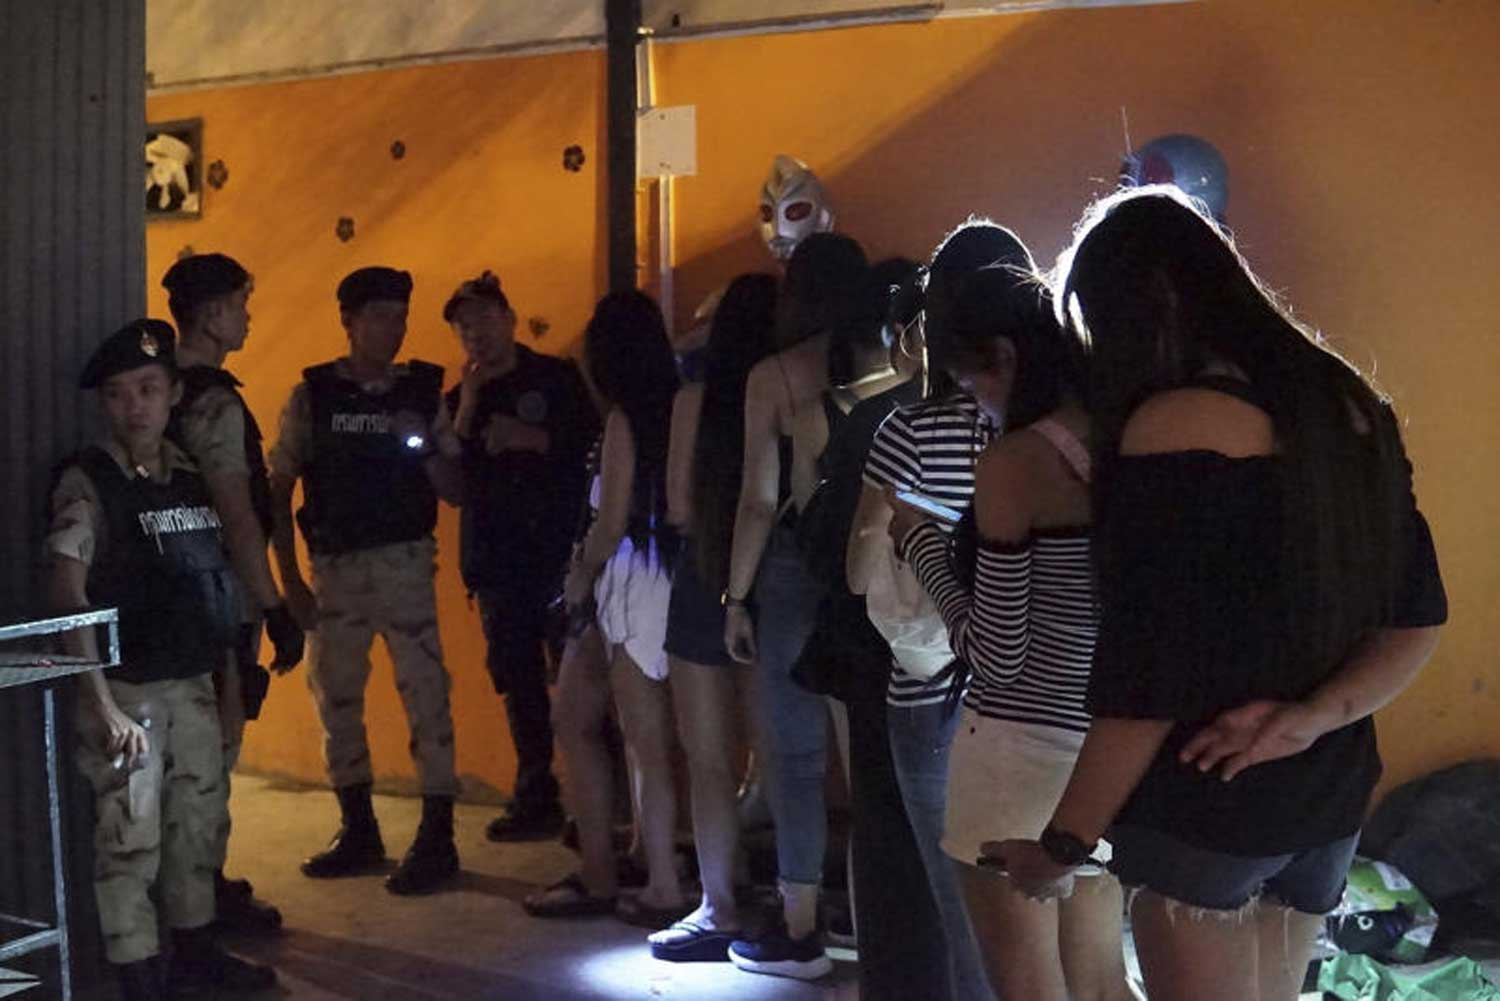 Patrons queue for urine tests after the Provincial Administration Department raided a pub in Saraburi's Nong Khae district. The pub was ordered to close for five years for operating without a licence and selling alcohol beyond the permitted hours. (File photo by the Provincial Administration Department)